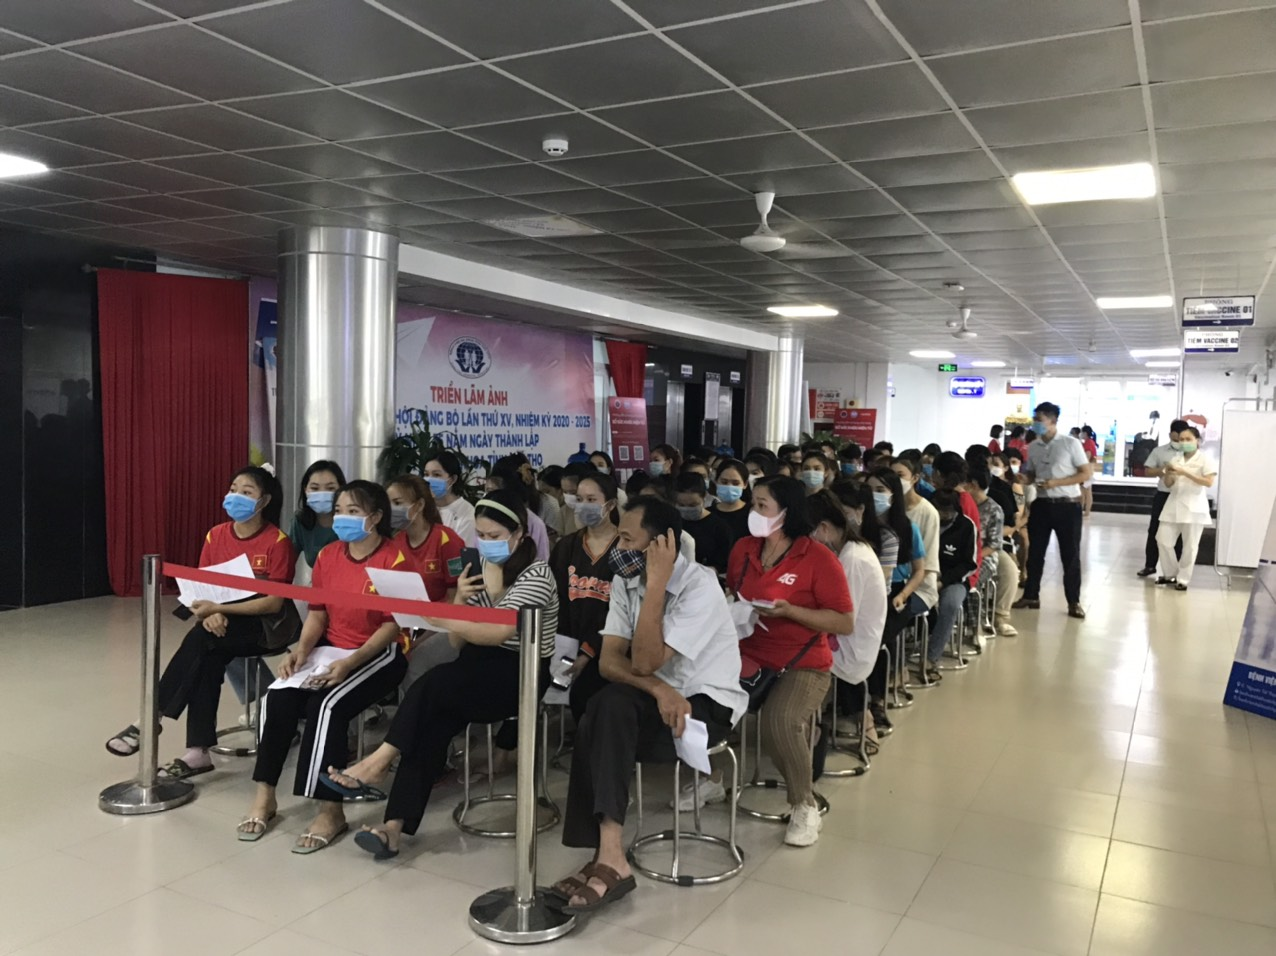 Laos students studying at Hung Vuong University have received the full course of vaccinations necessary to protect again Covid-19.